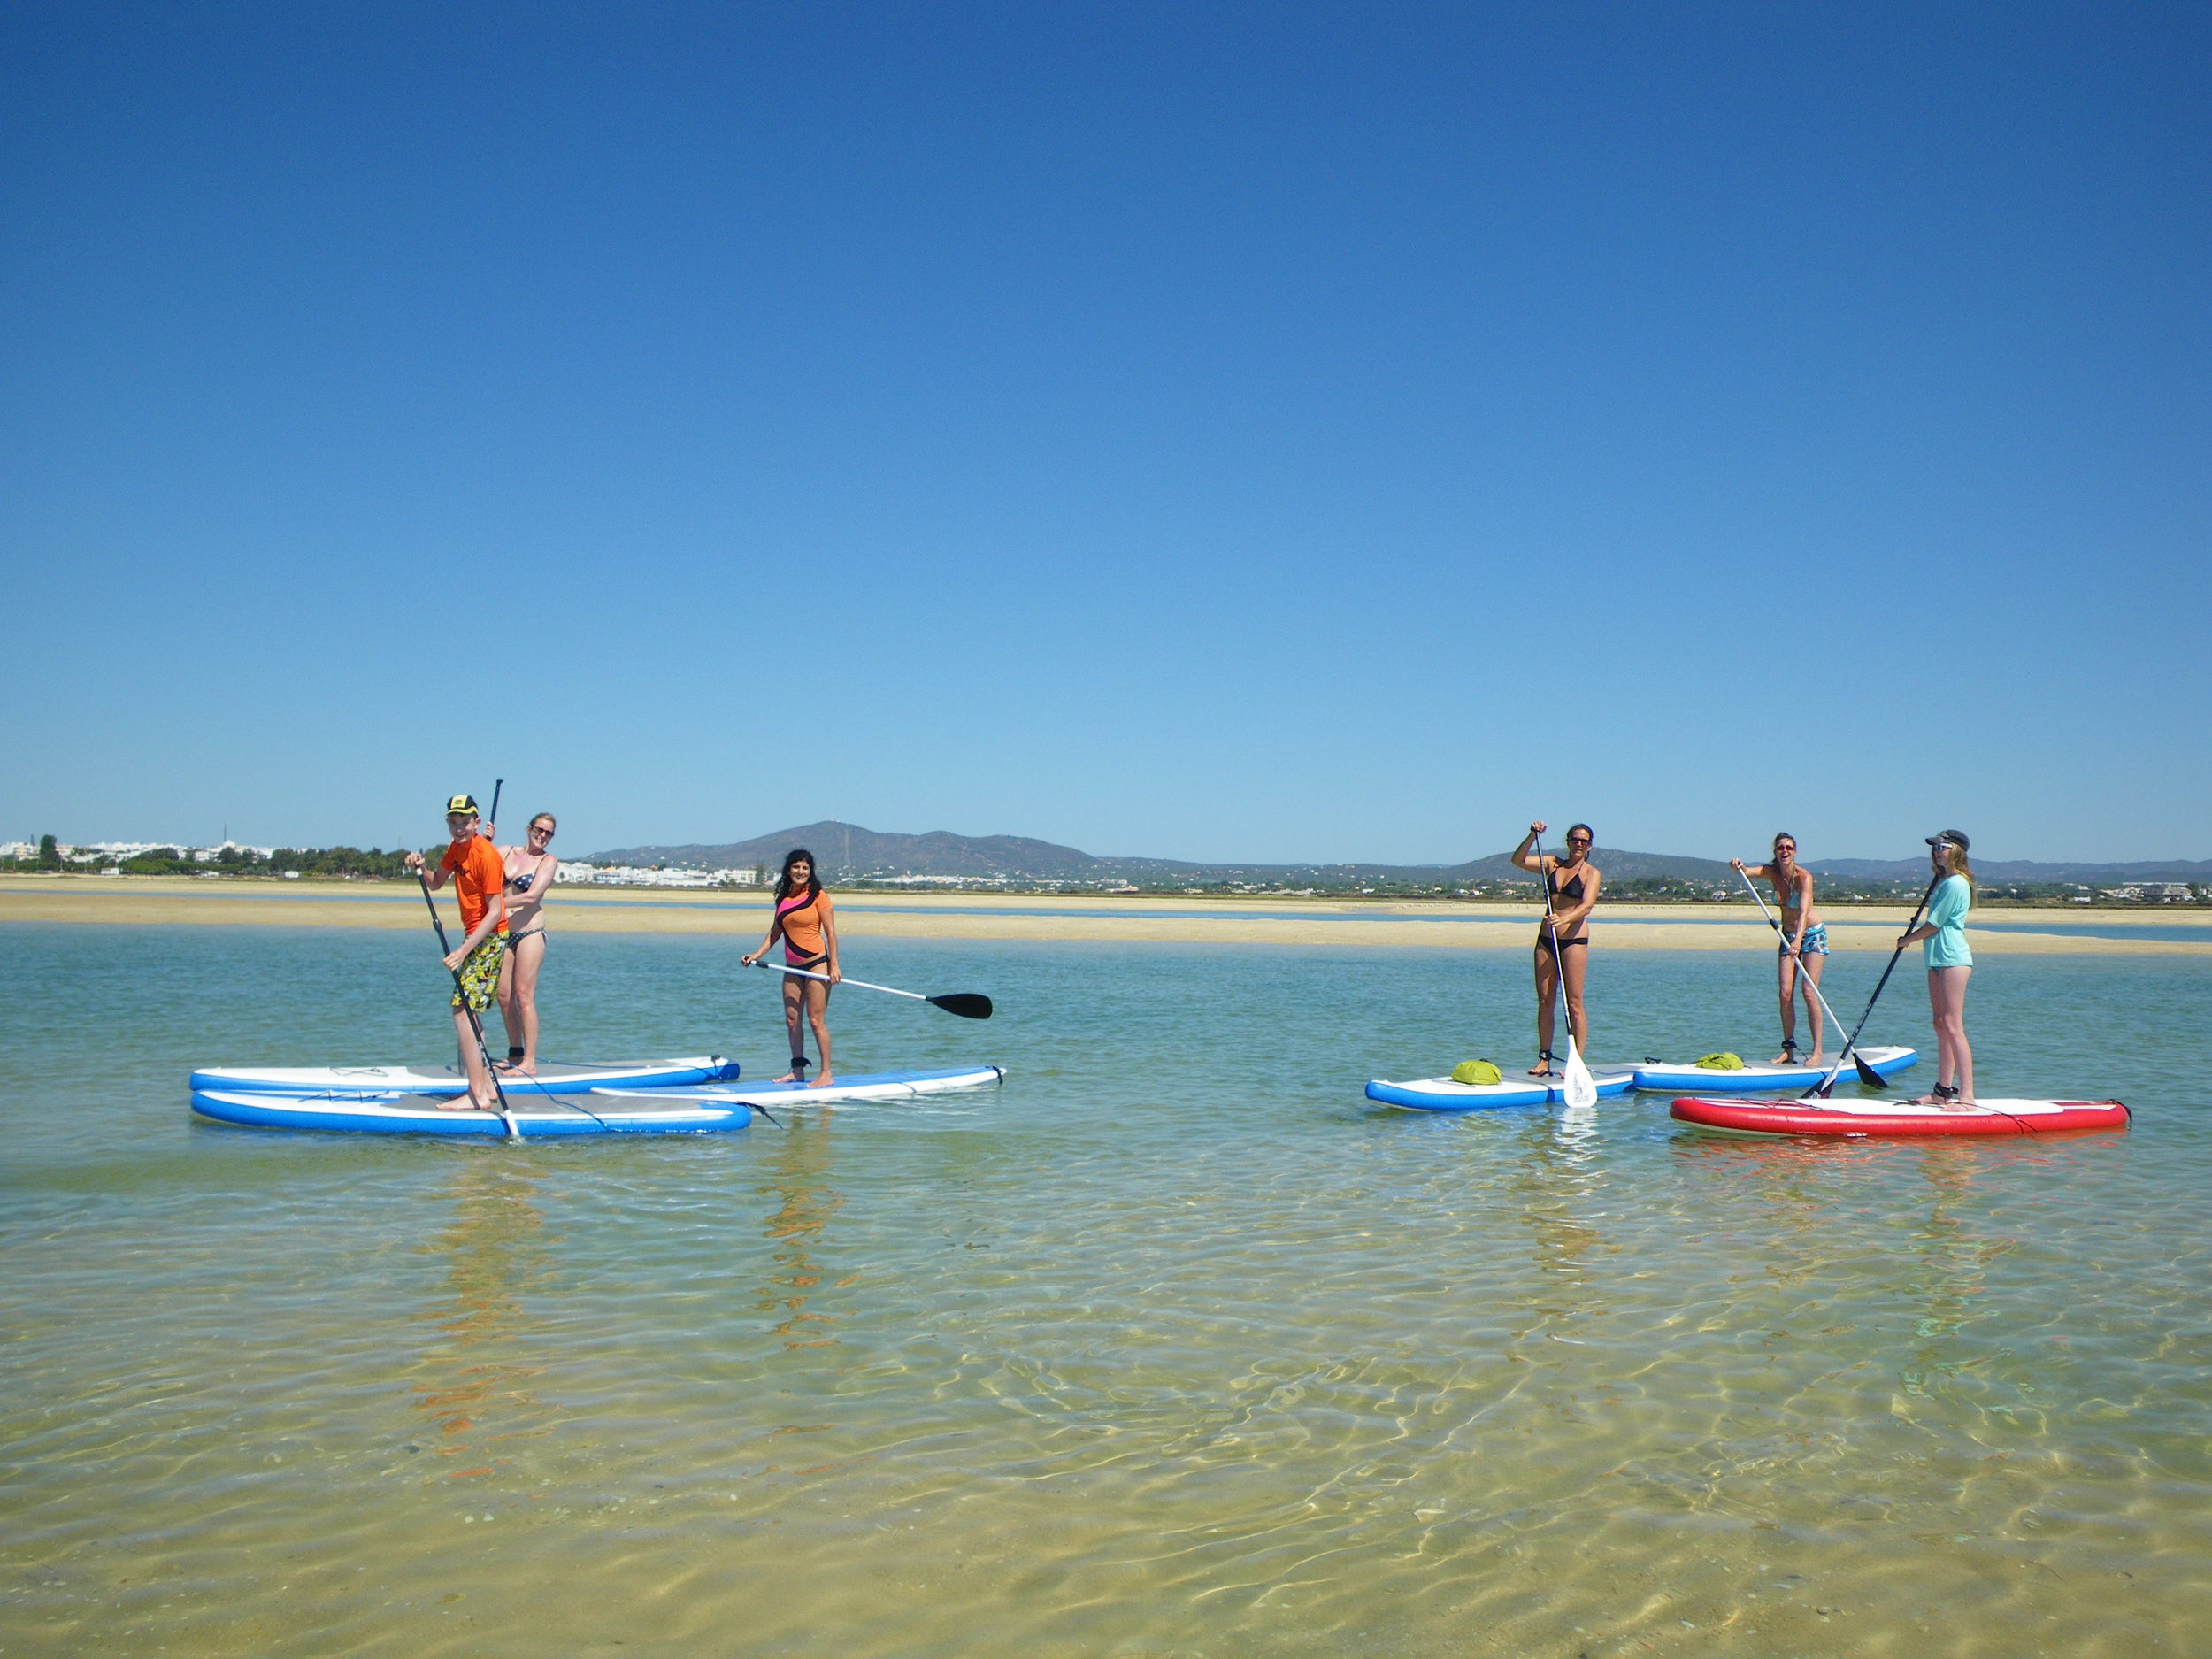 SUP, or Stand up Paddling, in our Paddleboarding Paradise at Fuzeta, in the Ria Formosa, between Faro and Tavira in the Algarve, Portugal